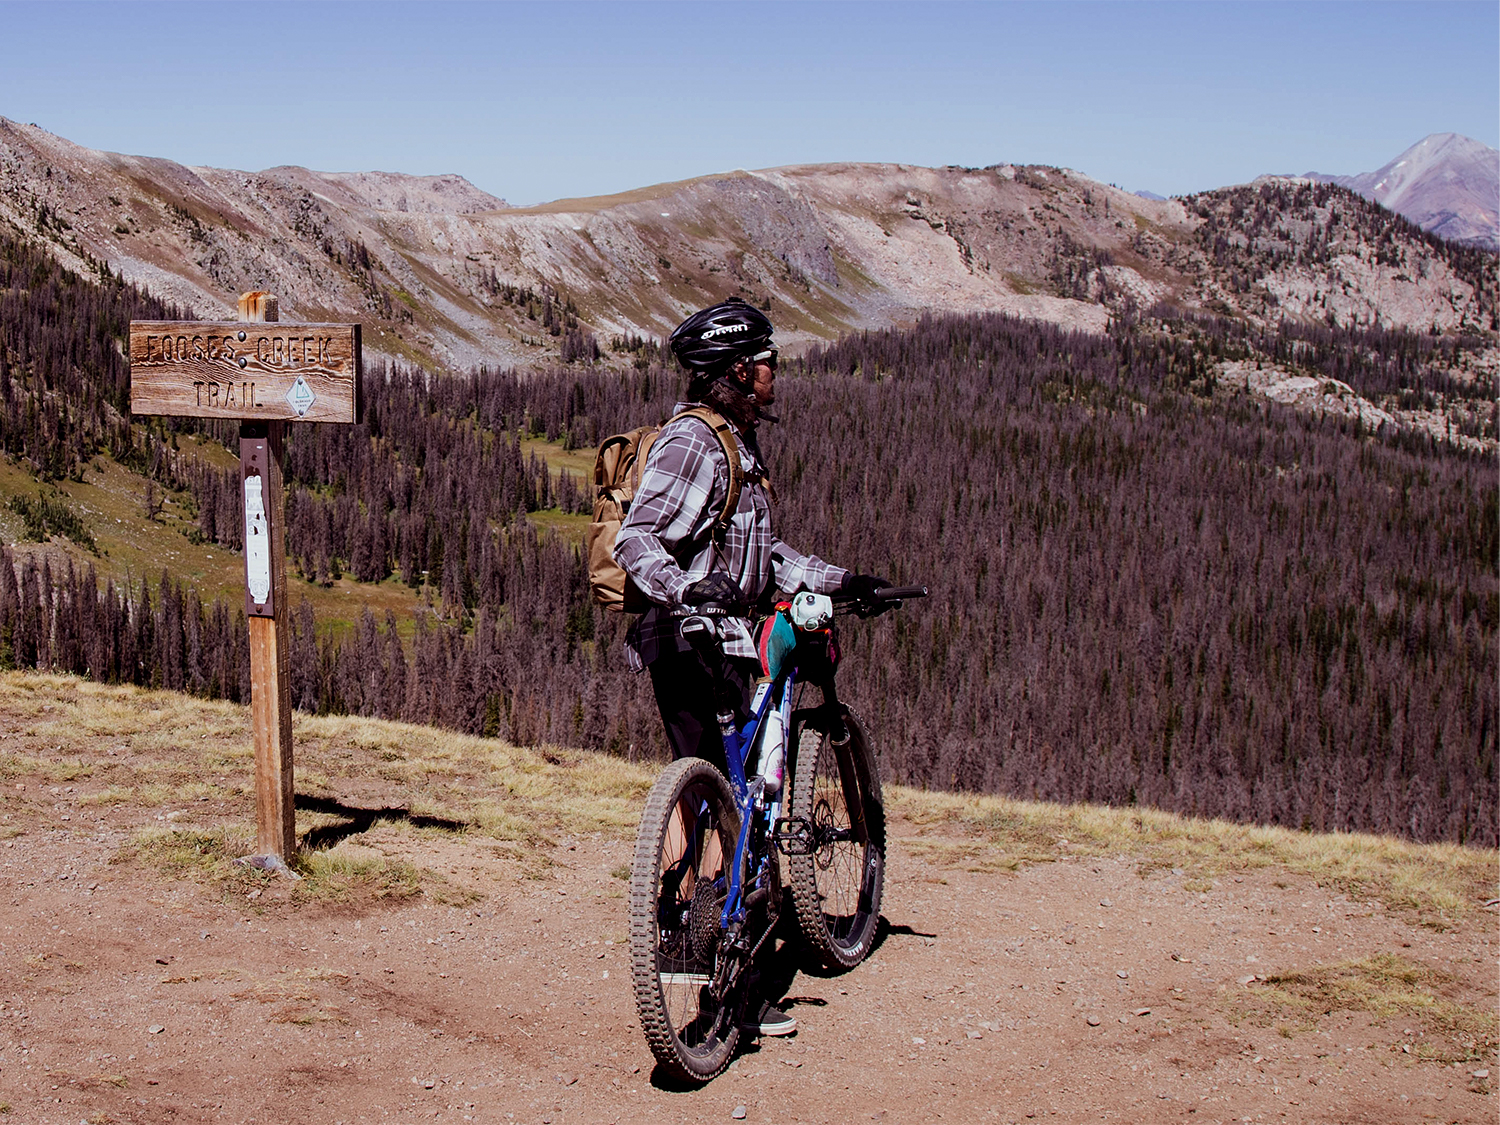 Man standing looking off into mountains with bike